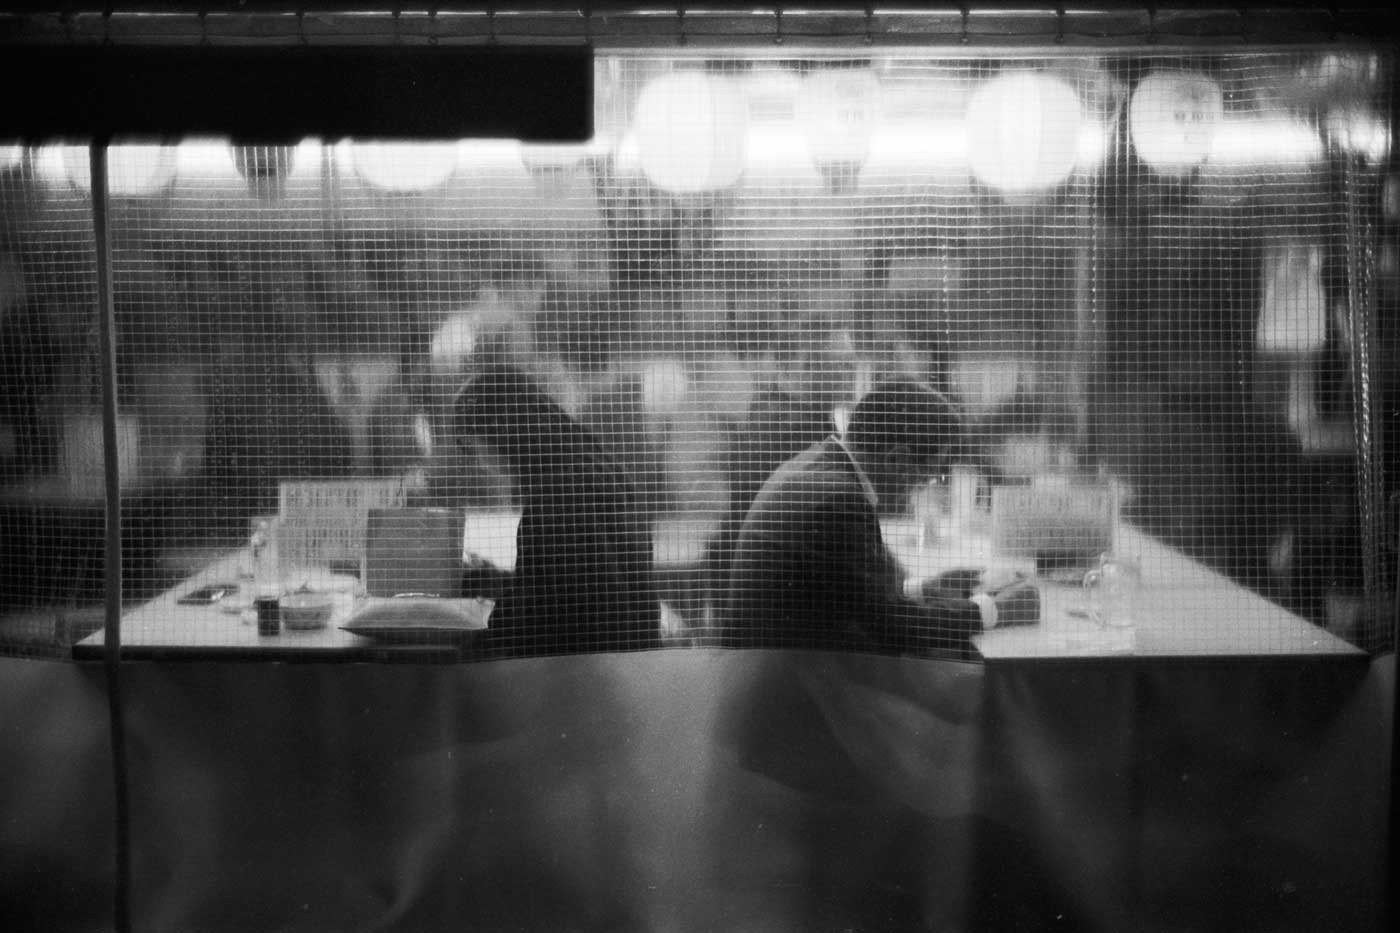 portfolio-we-have-seen-better-days-japan-tokyo-street-project-blog-photography-film-Yurakucho-day-Kentmere-400-leica-35mm-f1.4-35-summilux-infinity-lock-bw-sitting-behind-each-other-restaurant